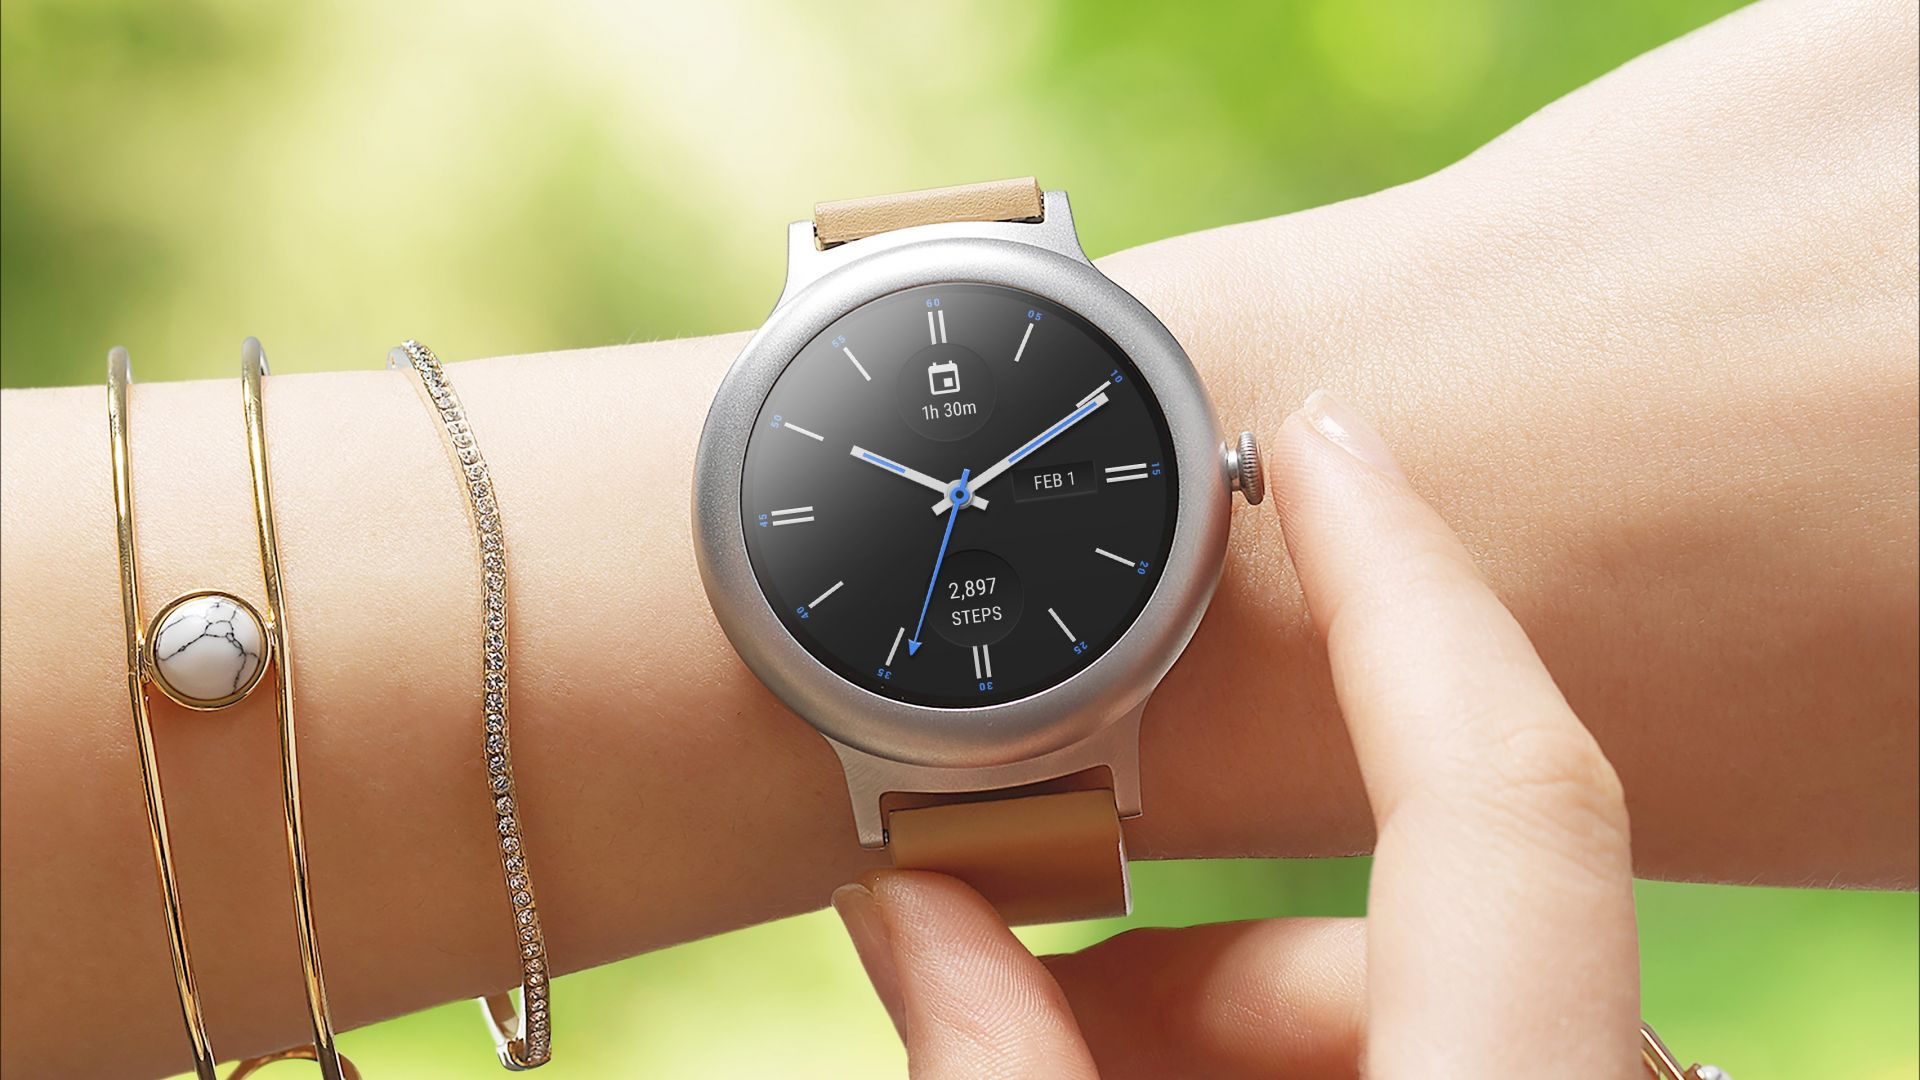 LG Watch Style, MWC 2017, best smartwatches, smartwatches for women (horizontal)